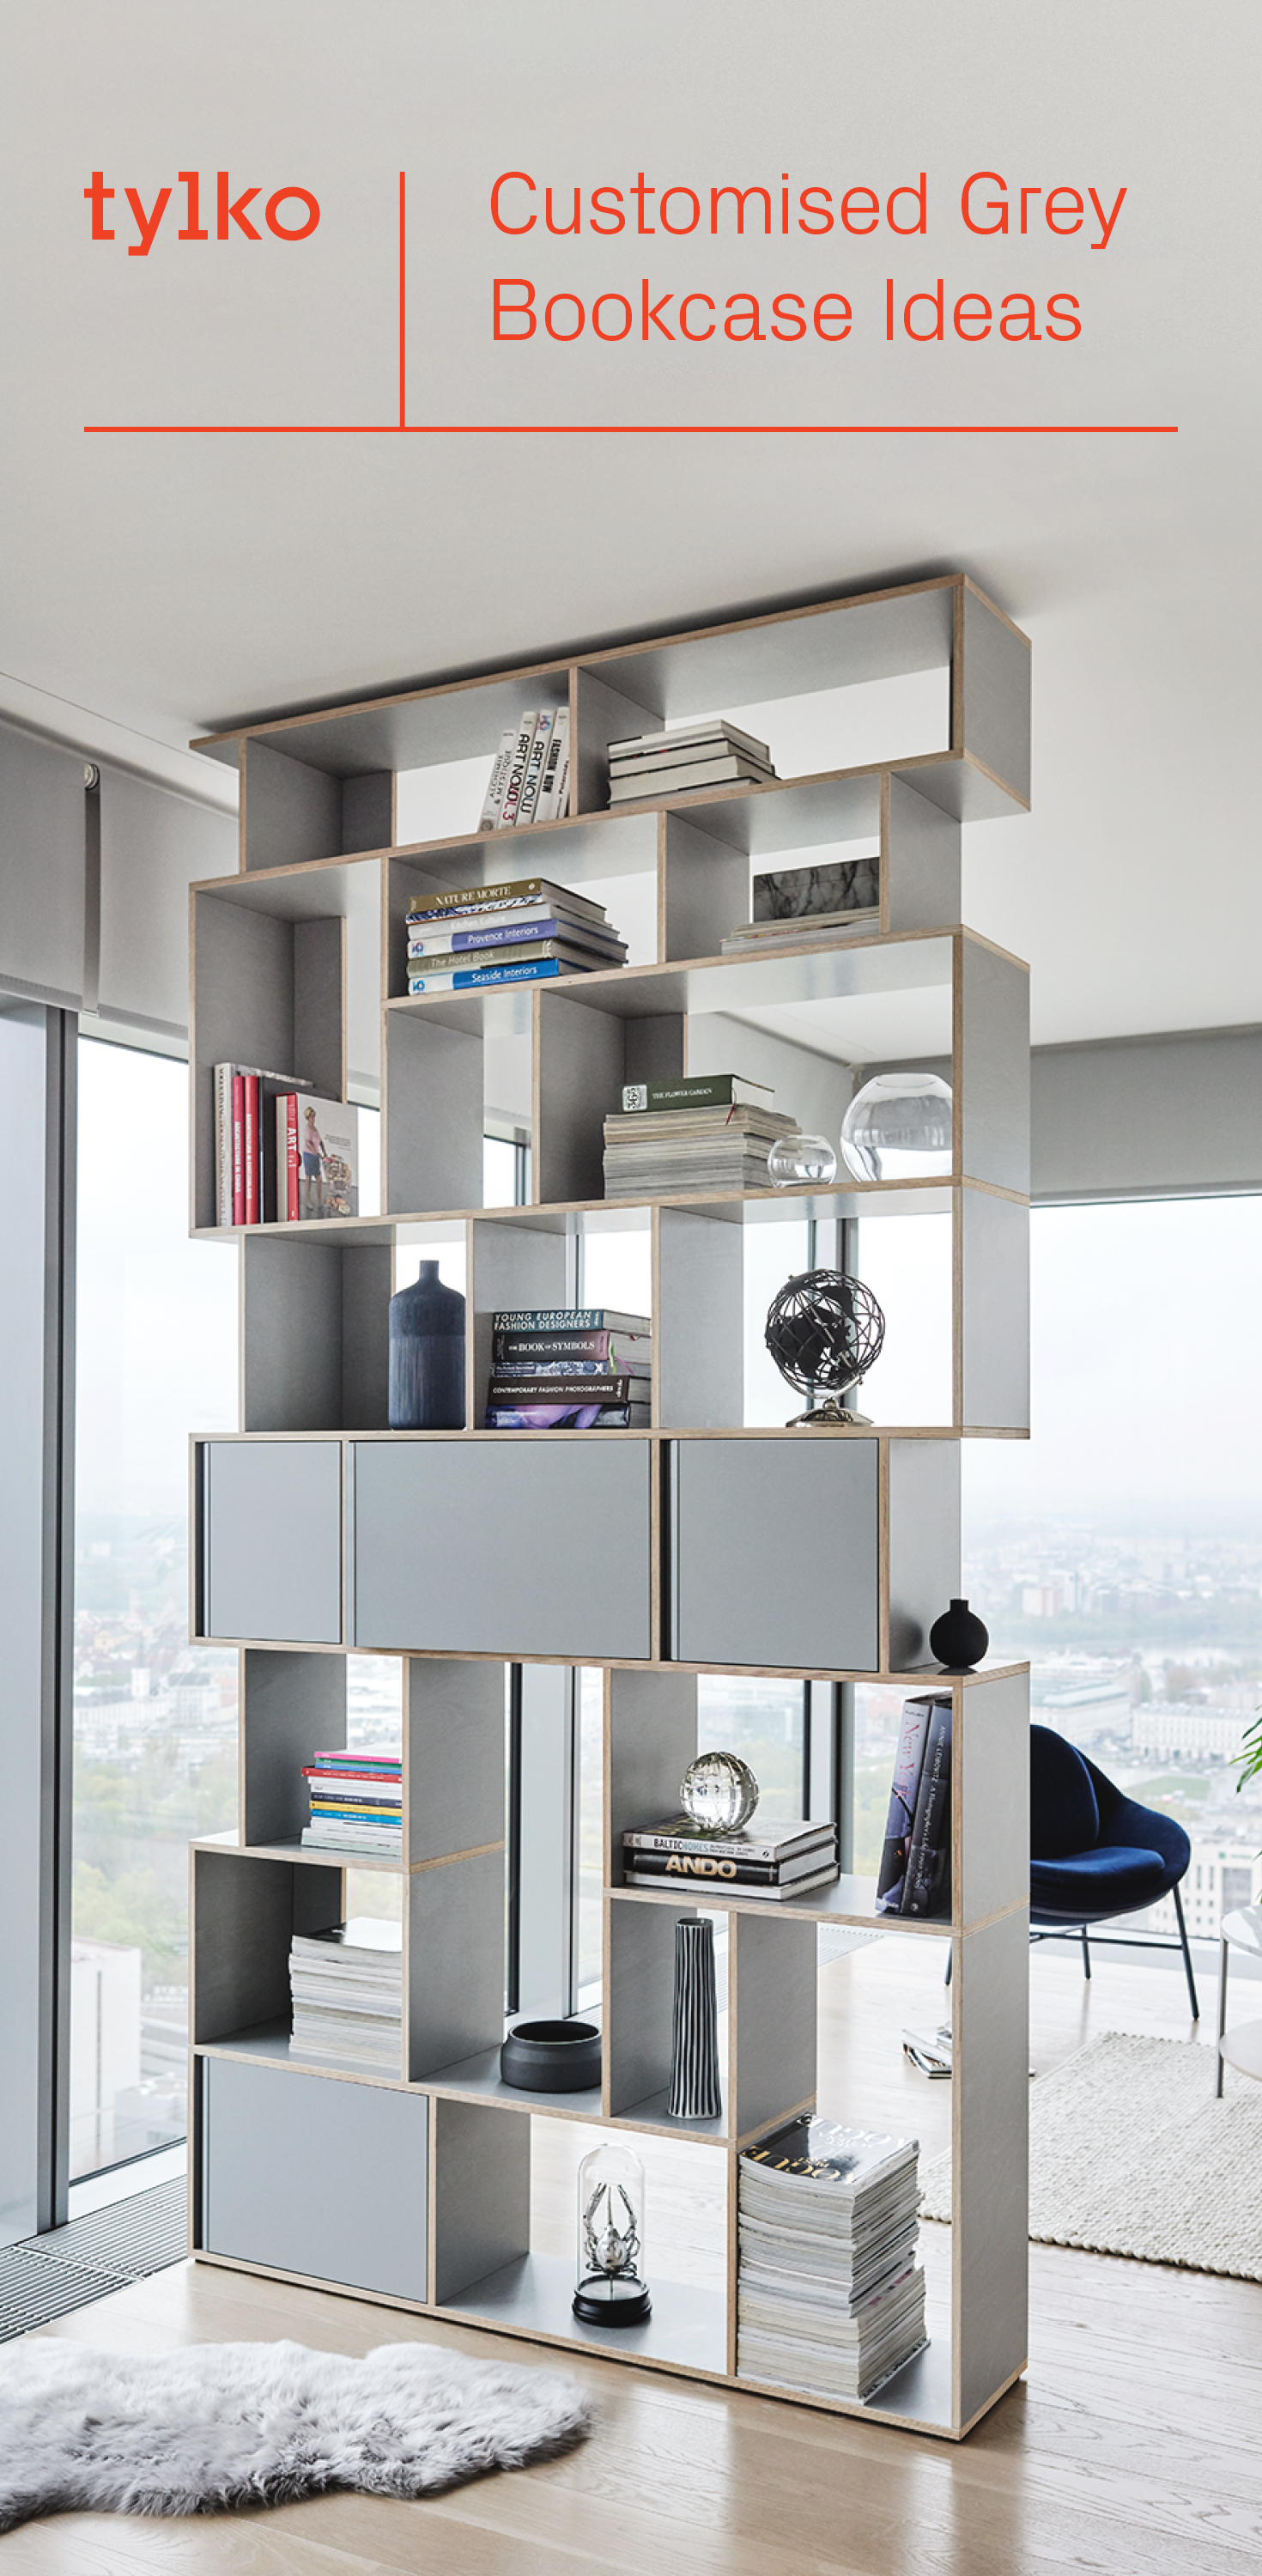 The Custom Gray Bookshelf From Tylko With Its Unique Scandinavian Styling Discover M Furniture Design Modern Scandinavian Bookshelves Stickley Furniture Plans